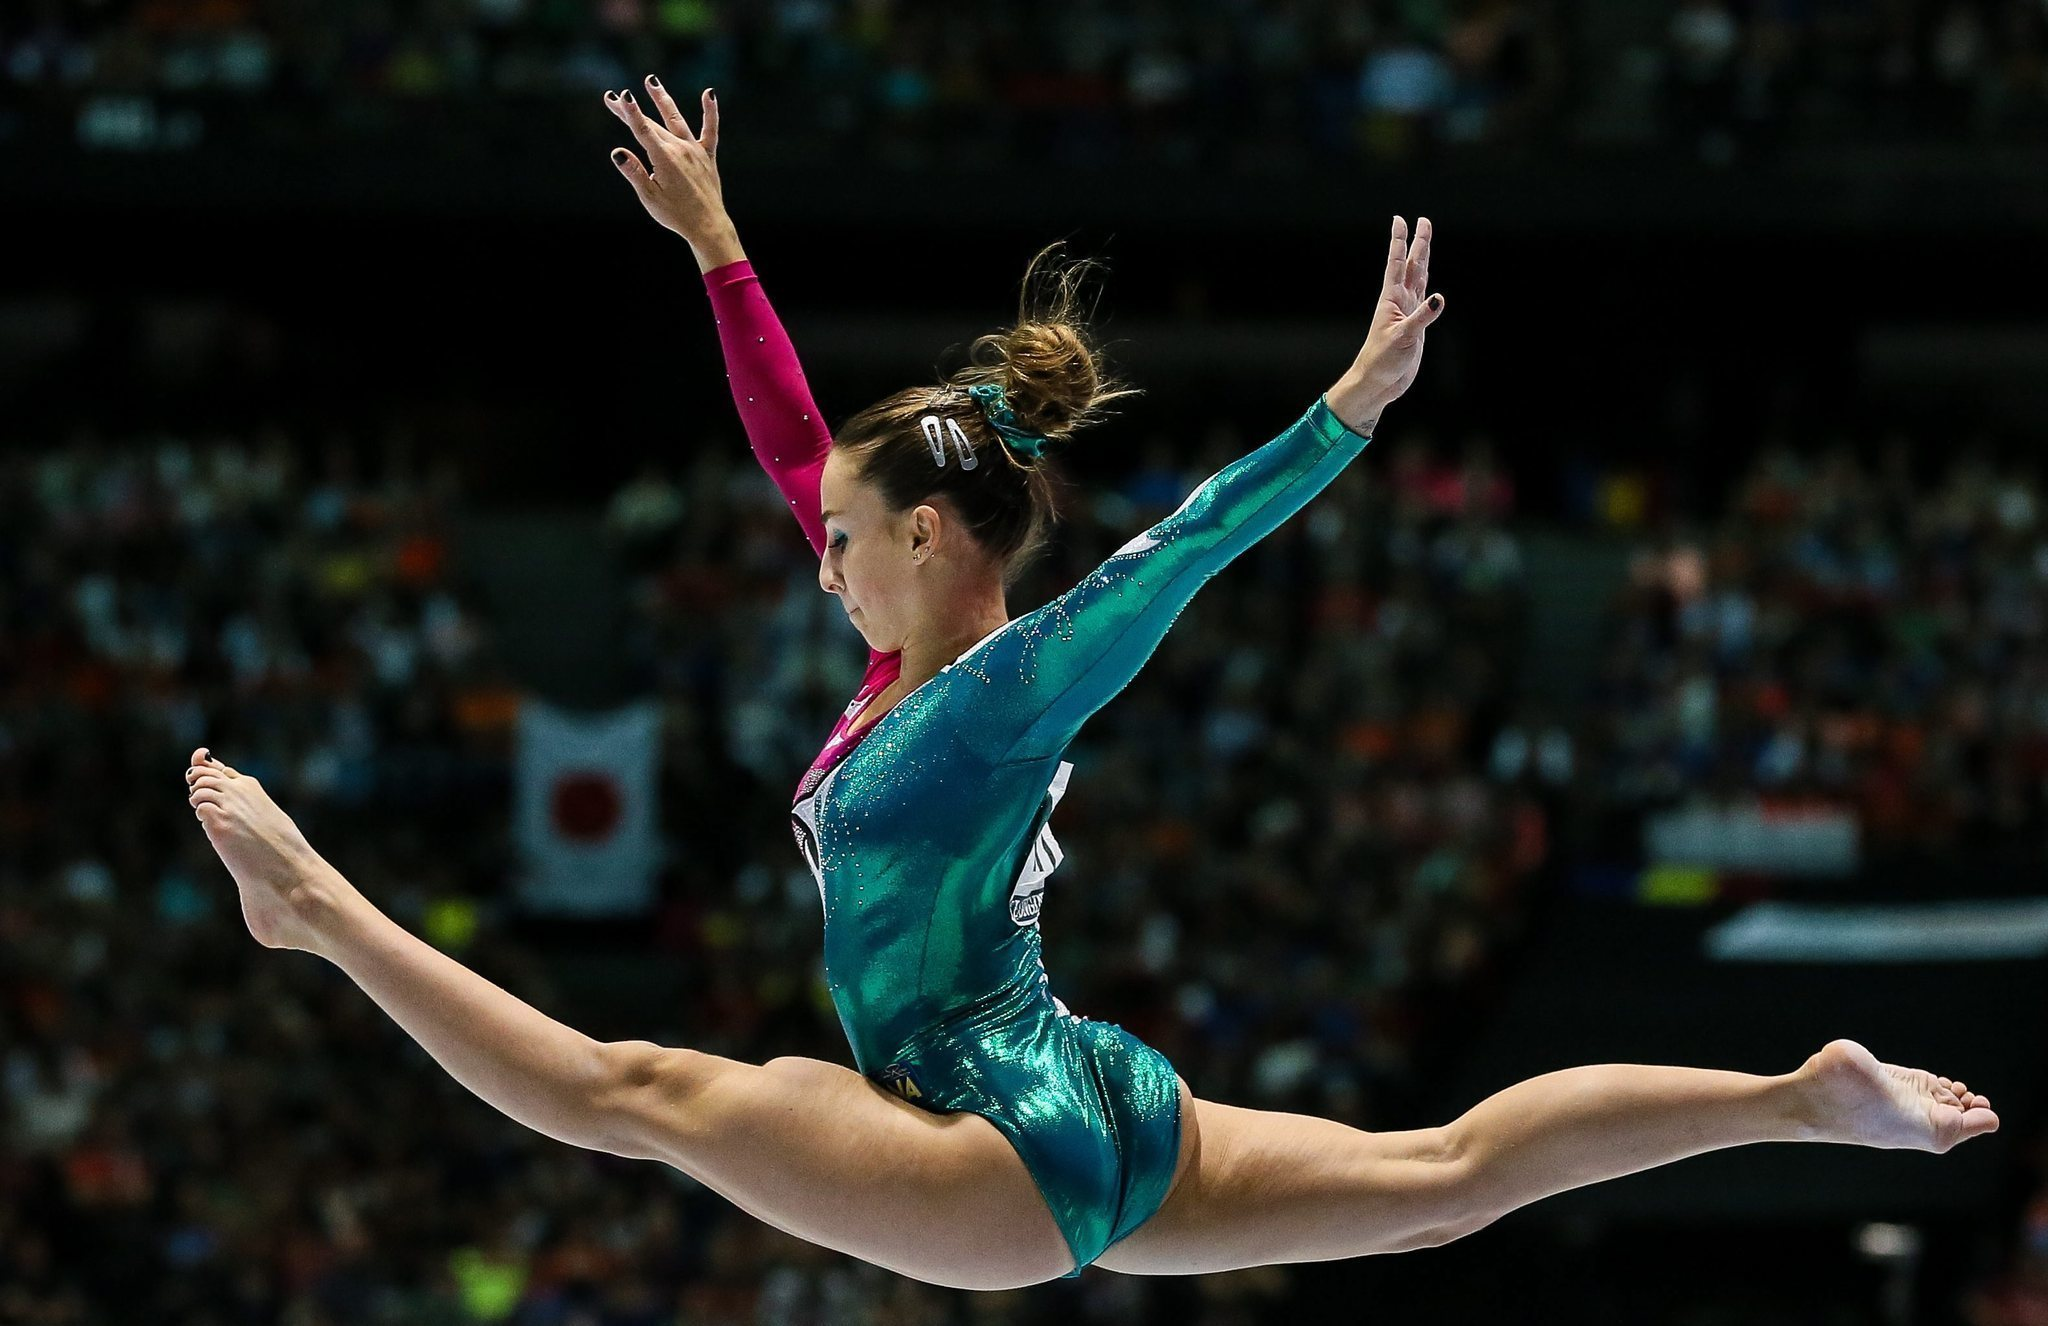 Italian Gymnastics Federation calls racially charged words a 'misunderstanding'